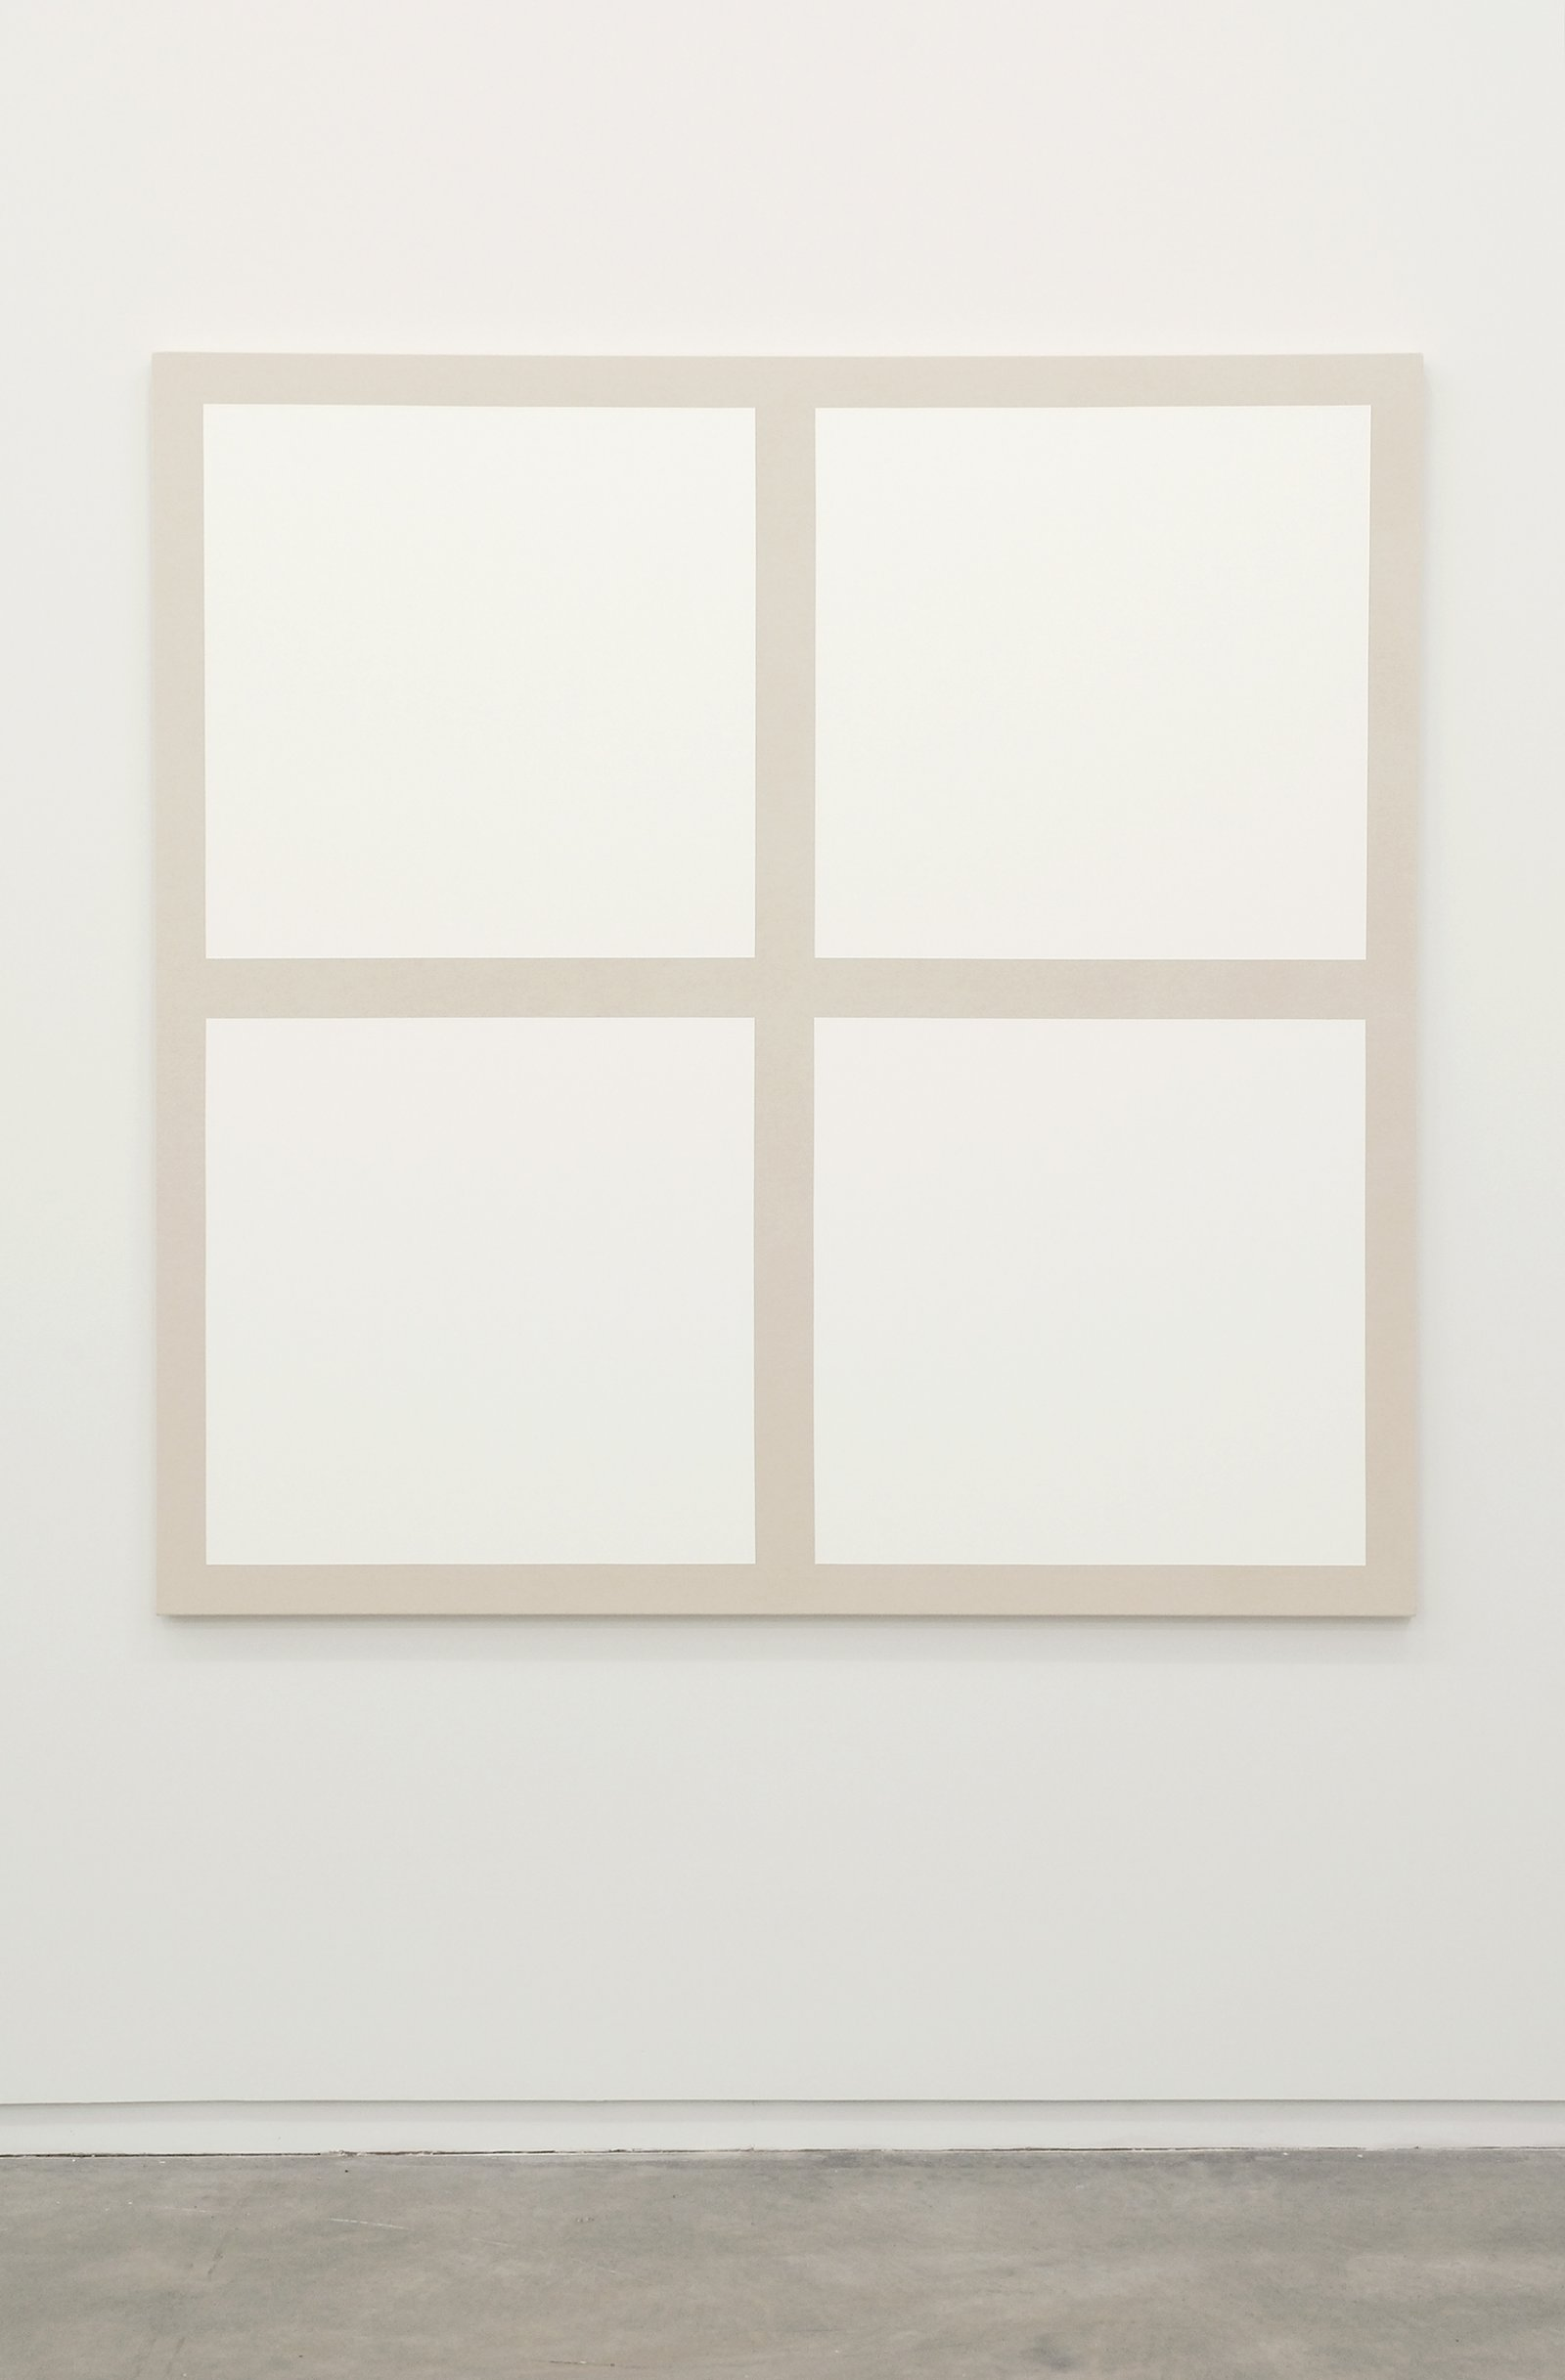 Arabella Campbell, Physical Facts Series #7, 2007, acrylic on canvas, 60 x 60 in. (64 x 64 cm) by